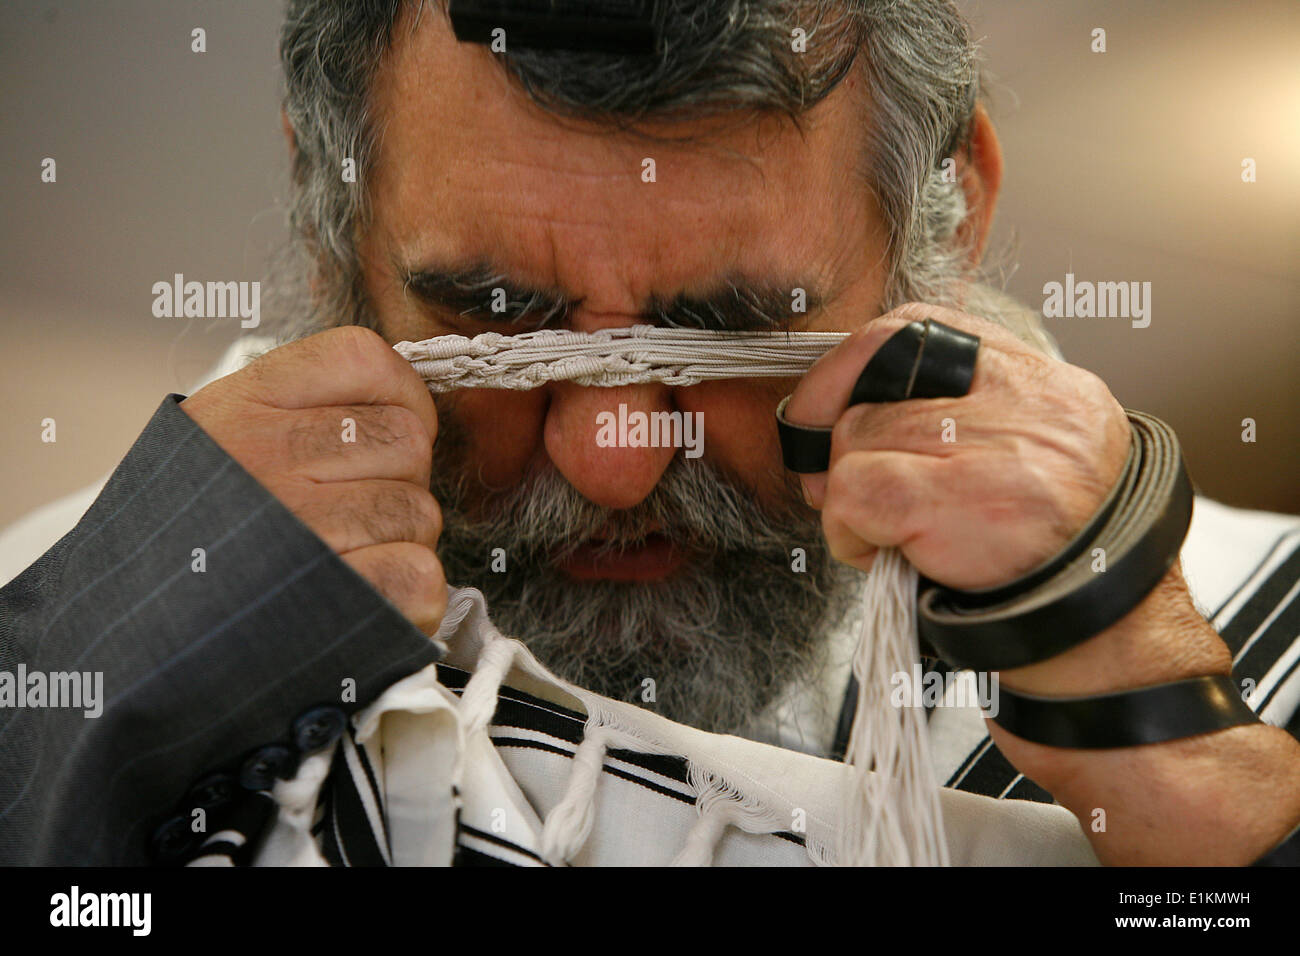 Praying Jew - Stock Image